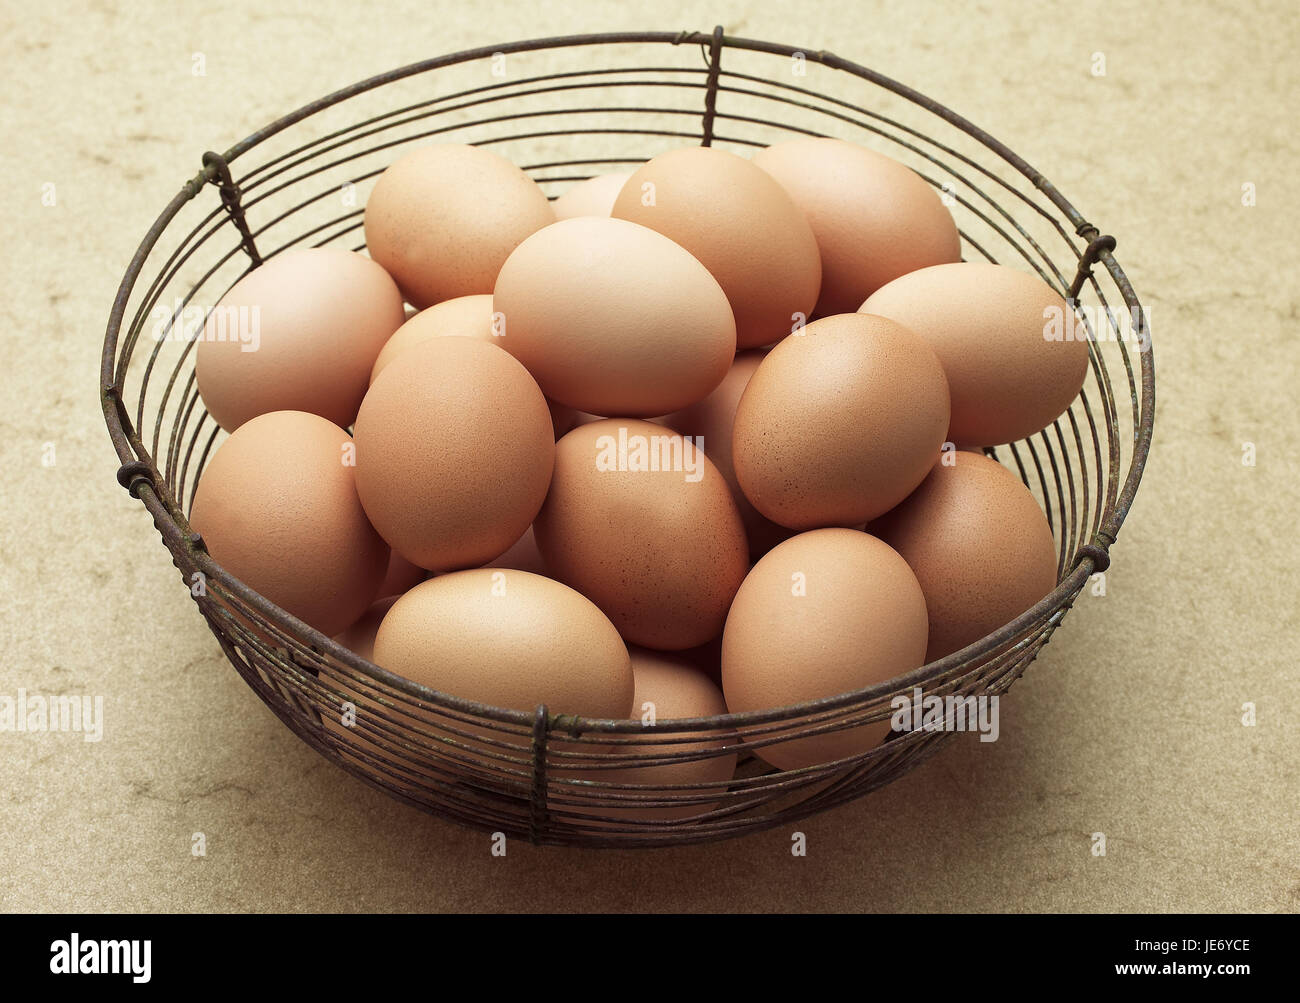 Poultry eggs, basket, - Stock Image